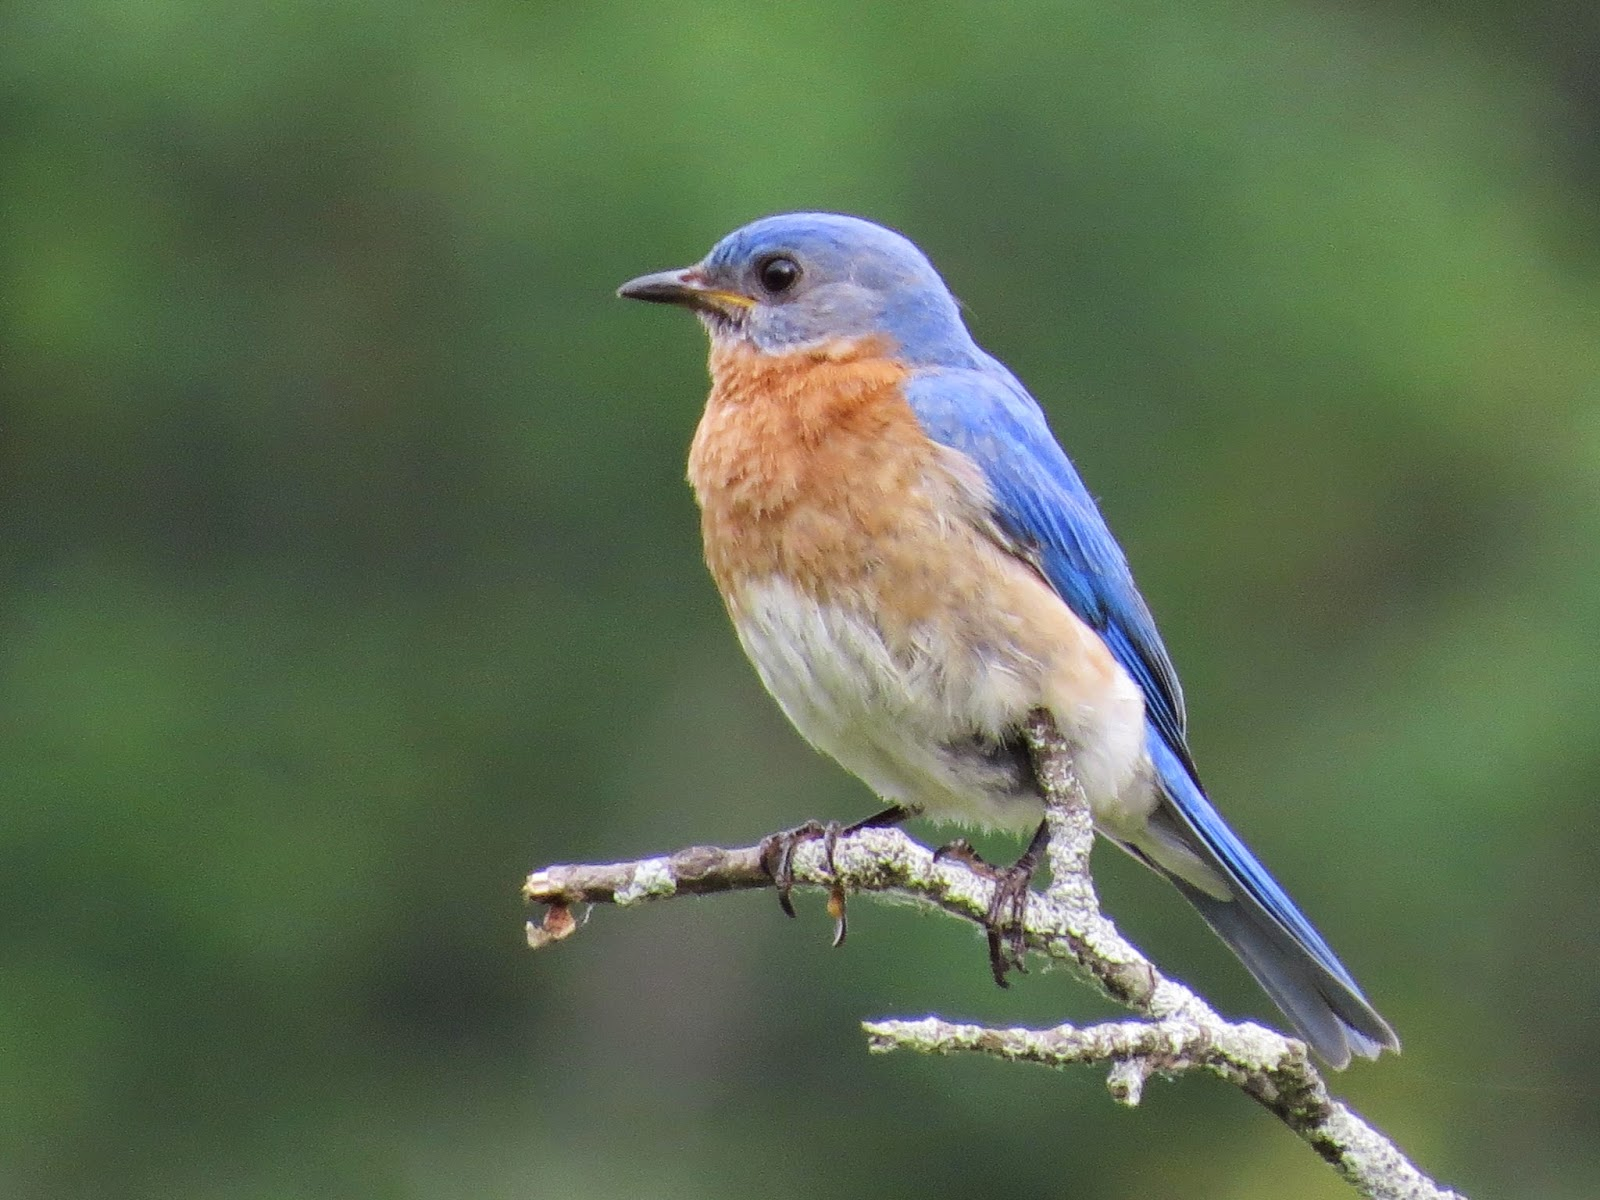 A small colourful thrush the eastern bluebird Sialia sialis is named for its bright blue plumage and its distribution in easte